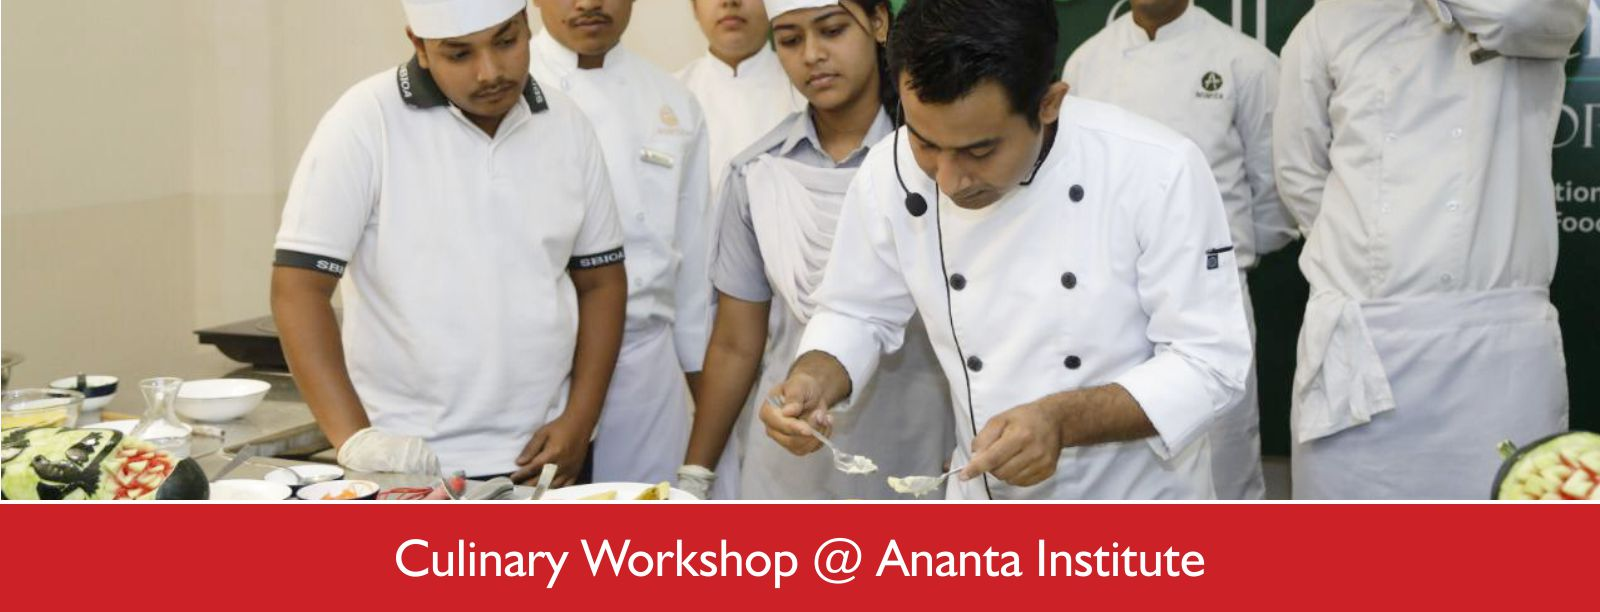 Culinary workshop @ Ananta Institute